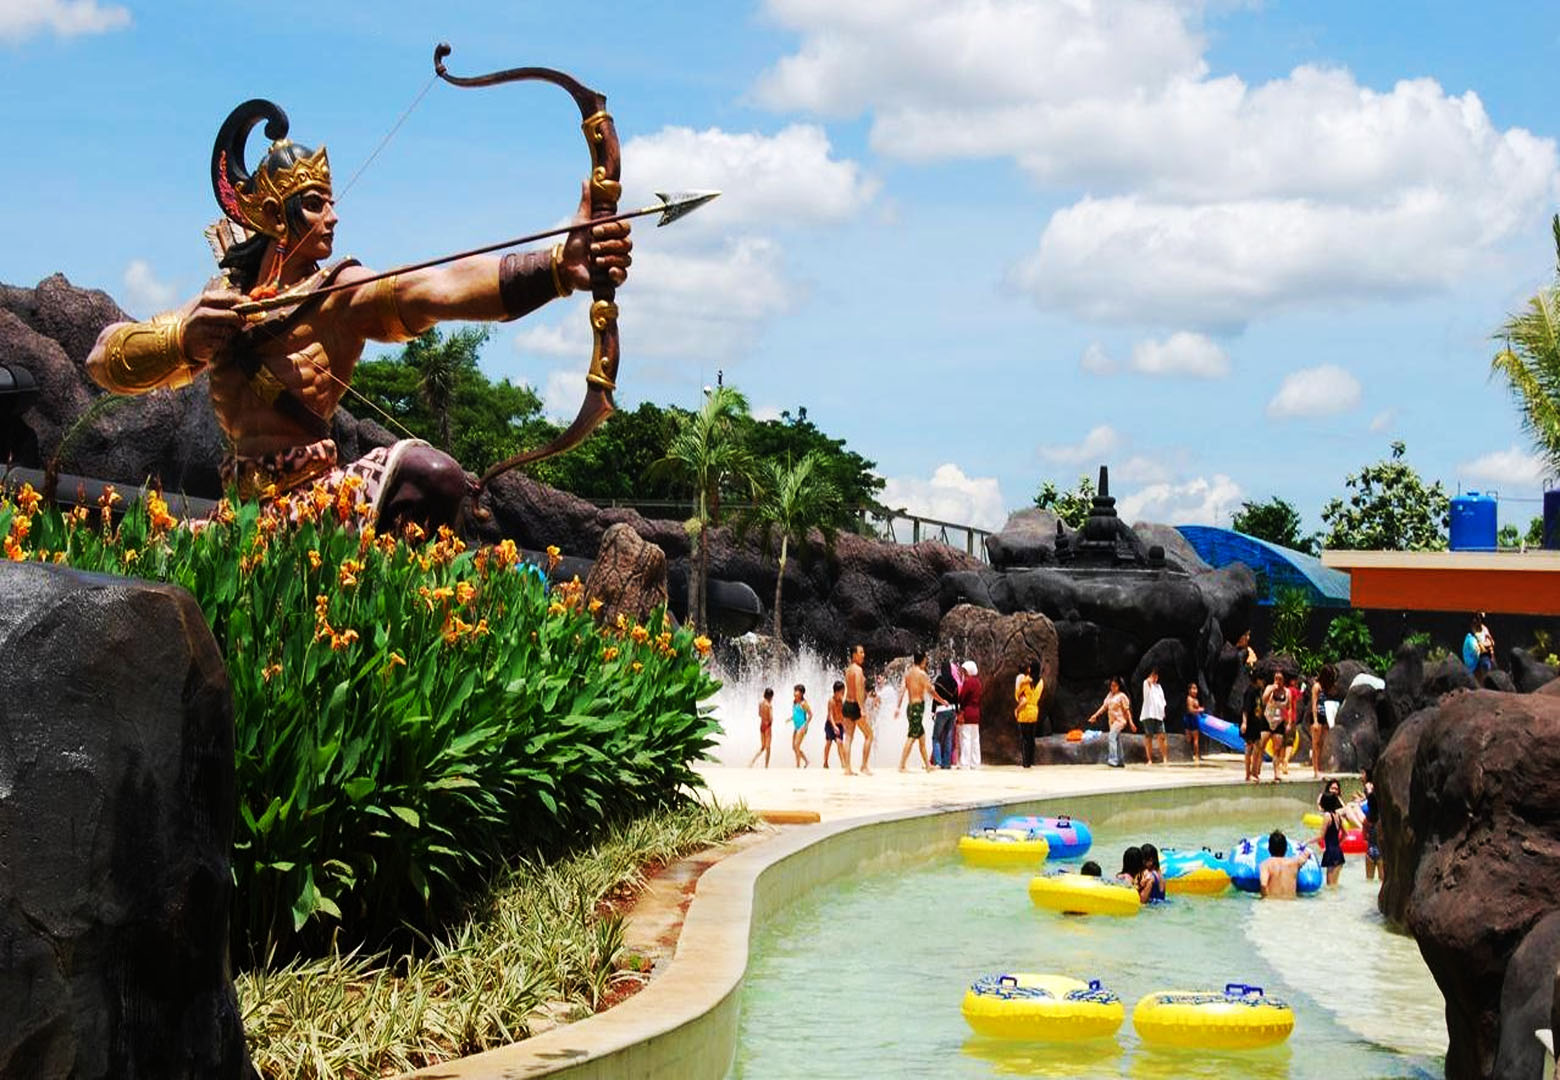 The next Indonesia best waterpark is Pandawa Water World